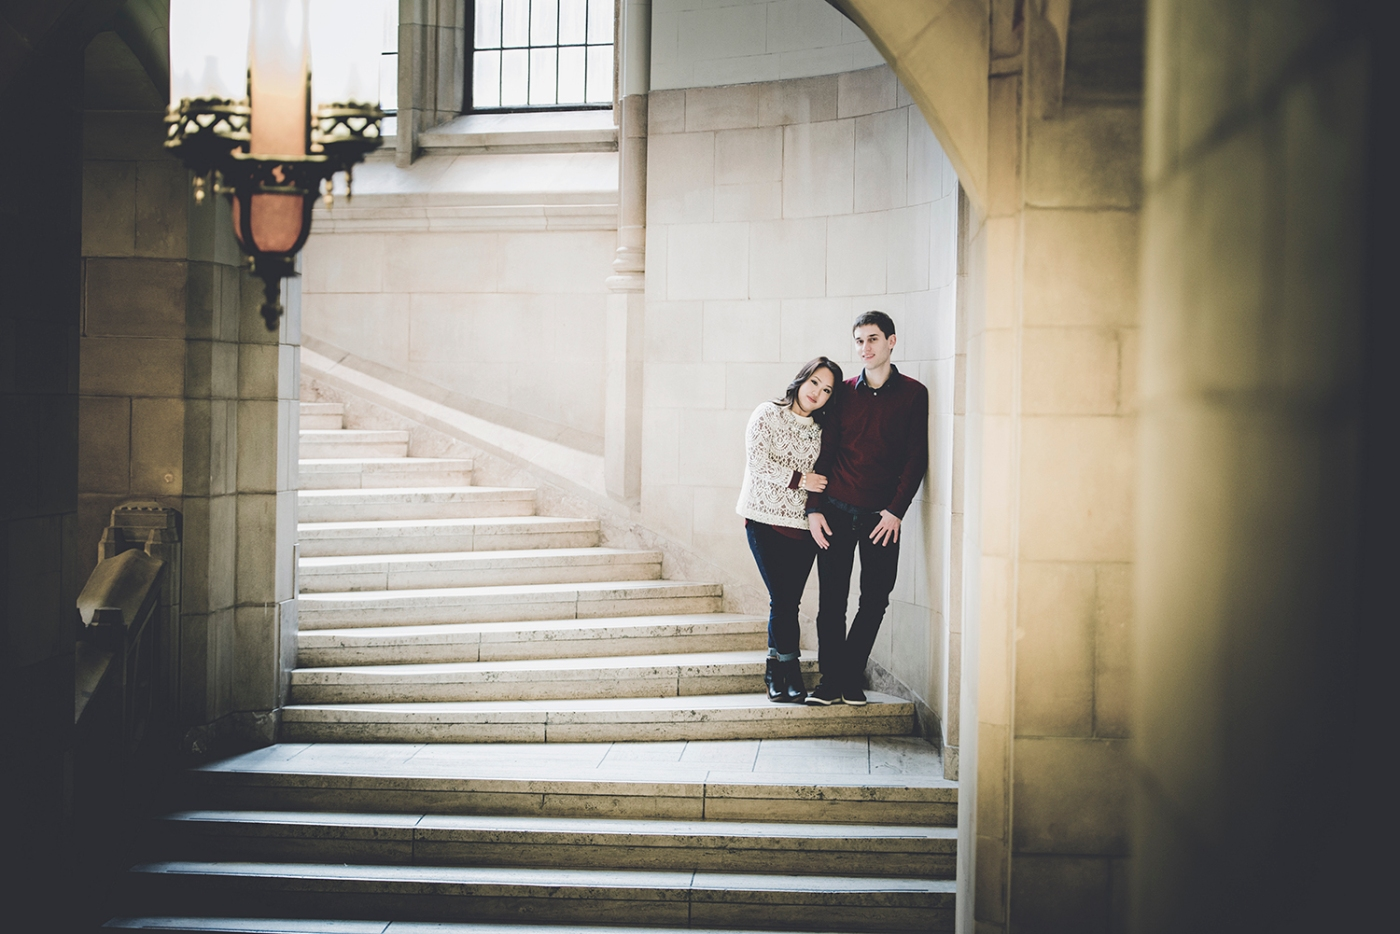 Engagement session at University of Washington by Jane Speleers DSC_4142